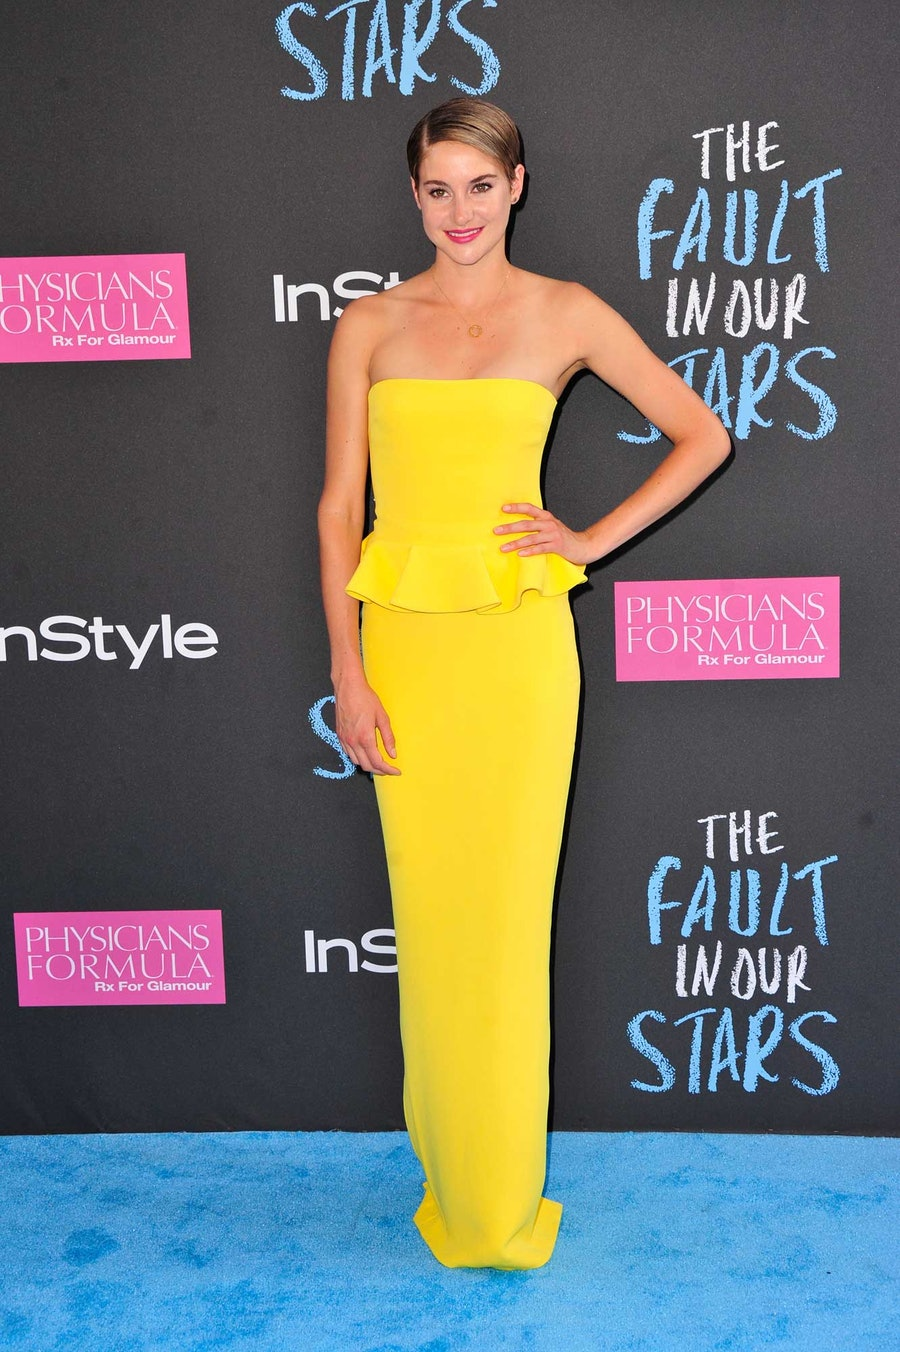 Shailene Woodley at The Fault In Our Stars Premiere